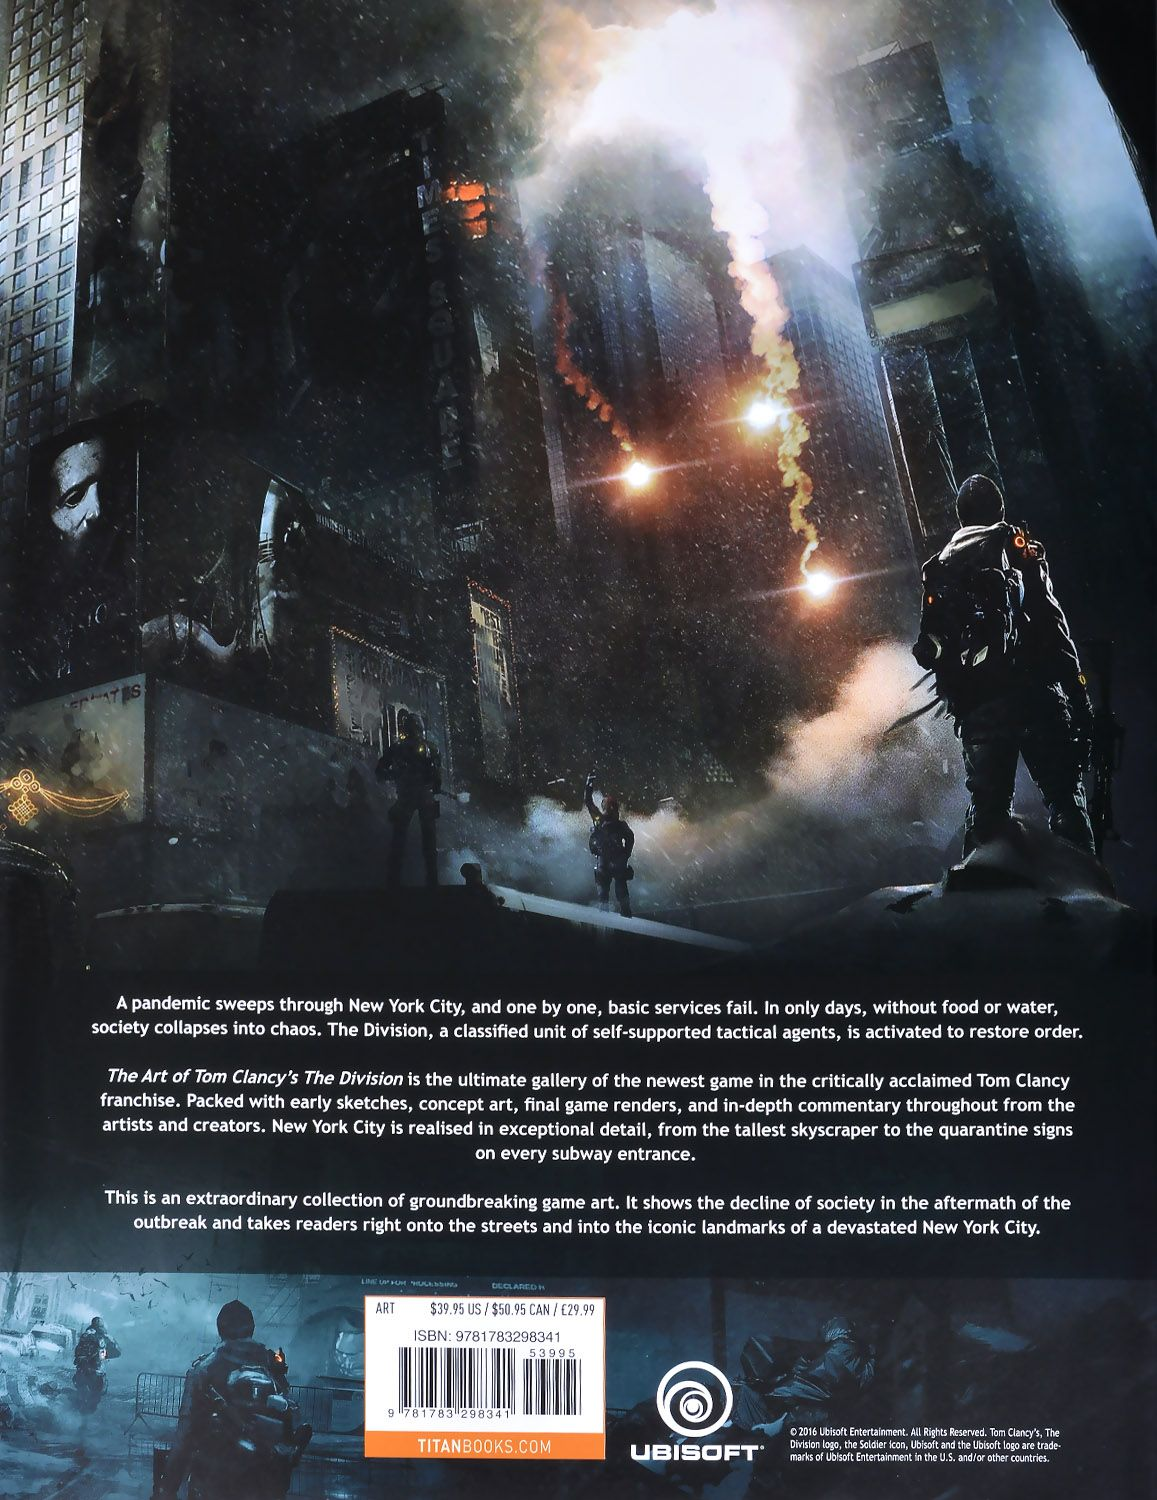 The Art of Tom Clancy's The Division - 3